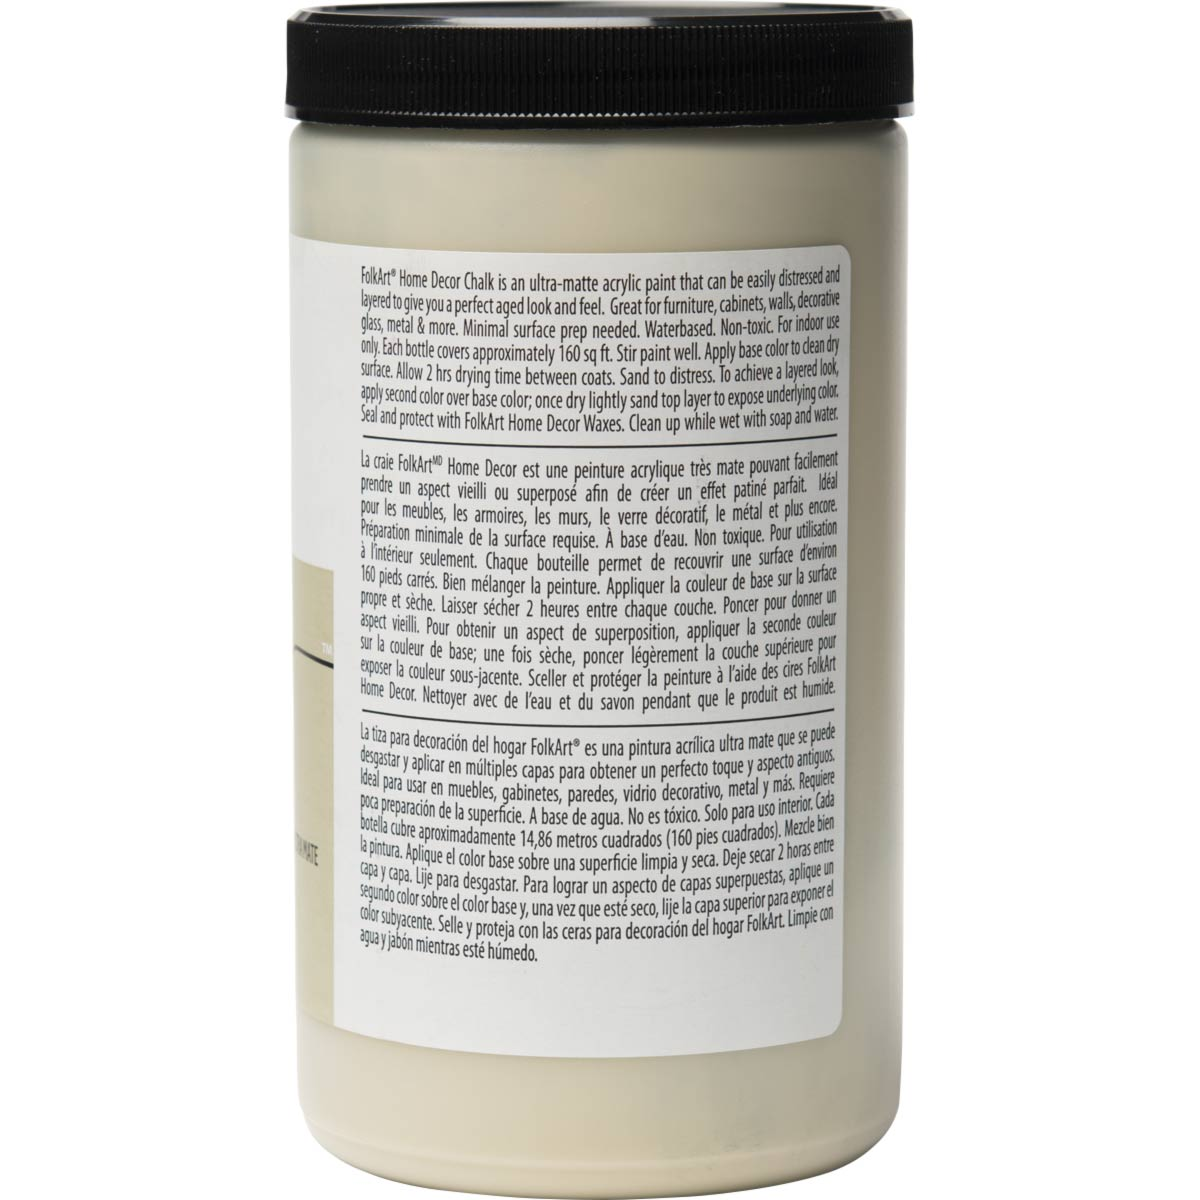 FolkArt ® Home Decor™ Chalk - Oatmeal, 32 oz.